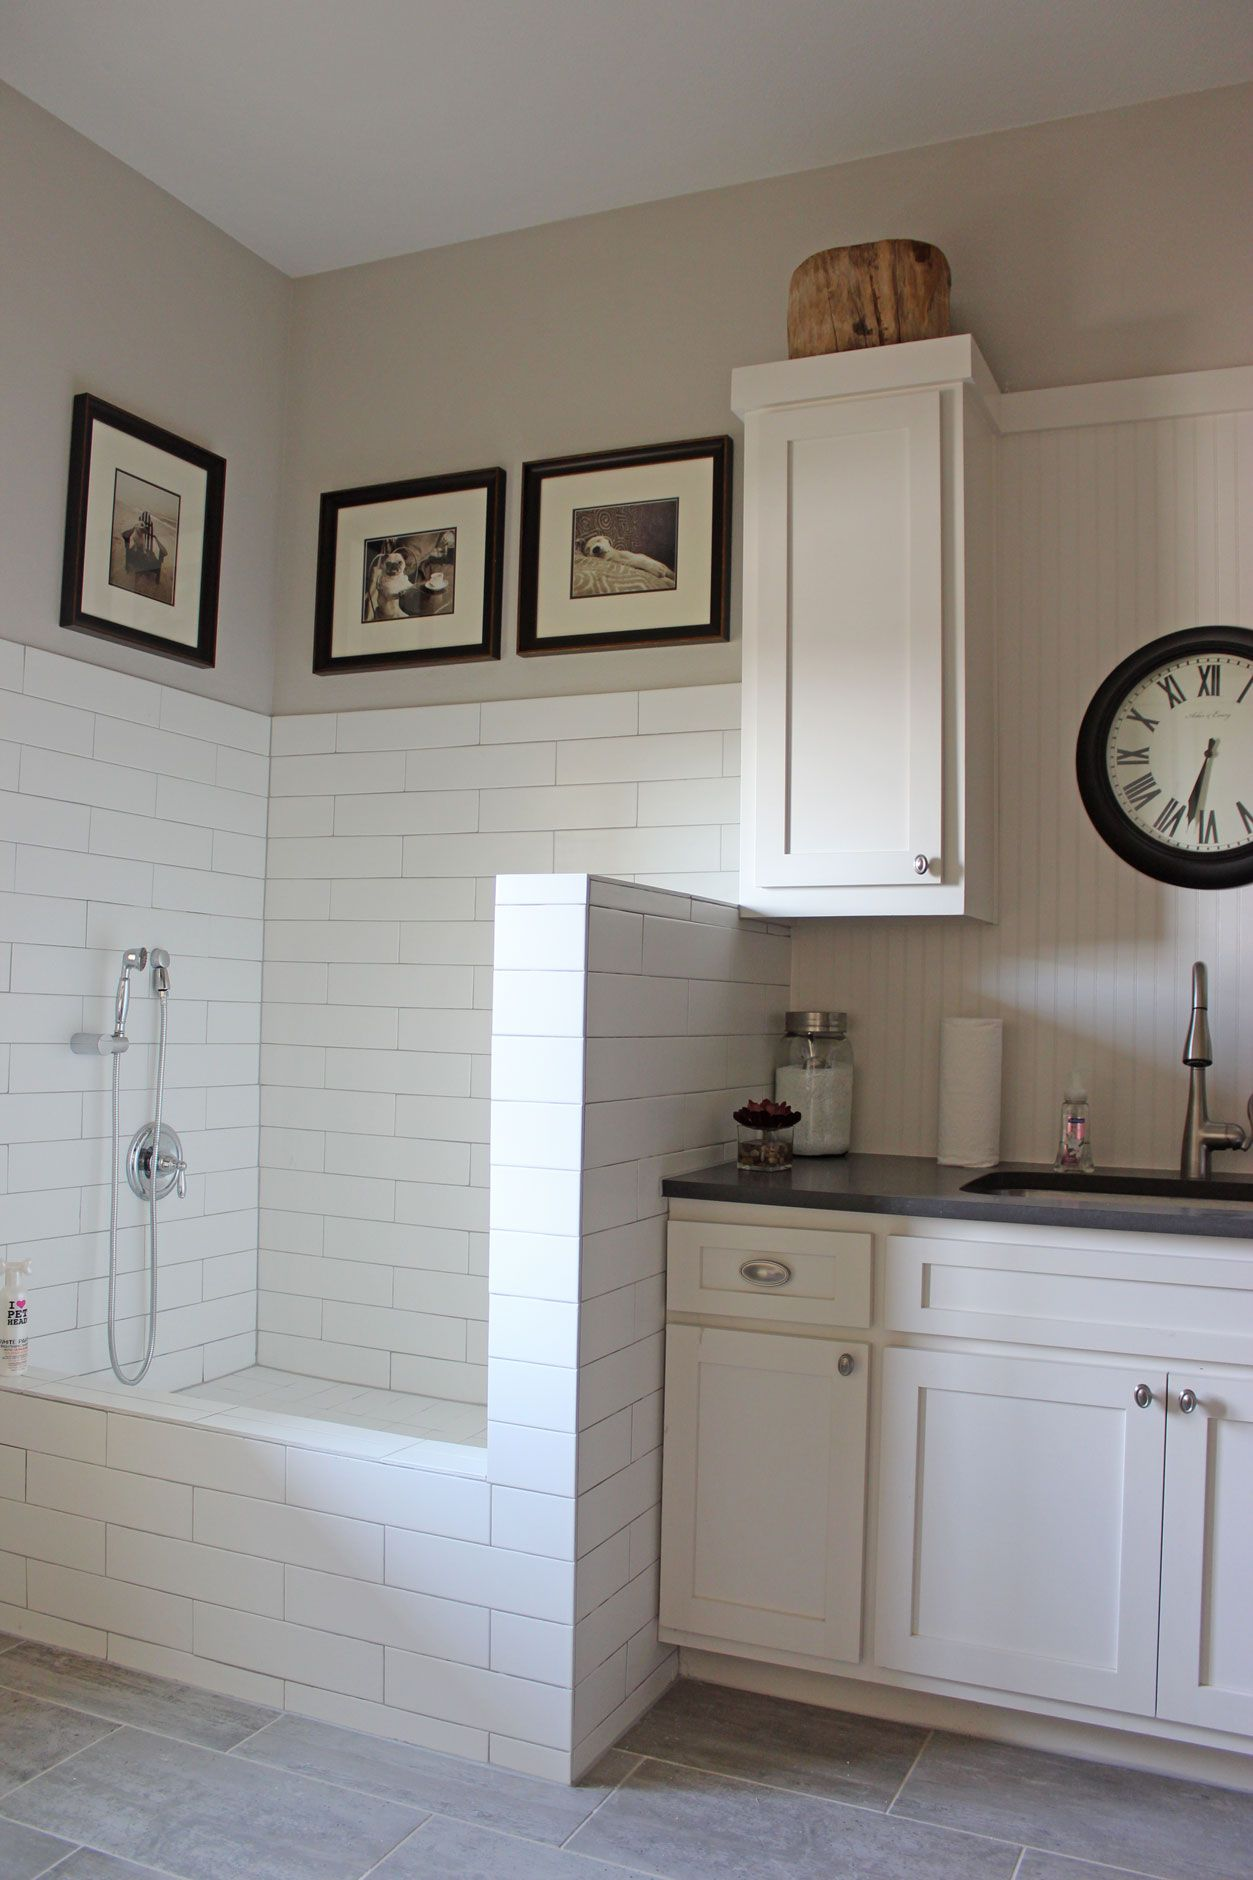 Burrows Cabinets white painted laundry room cabinets with tiled dog